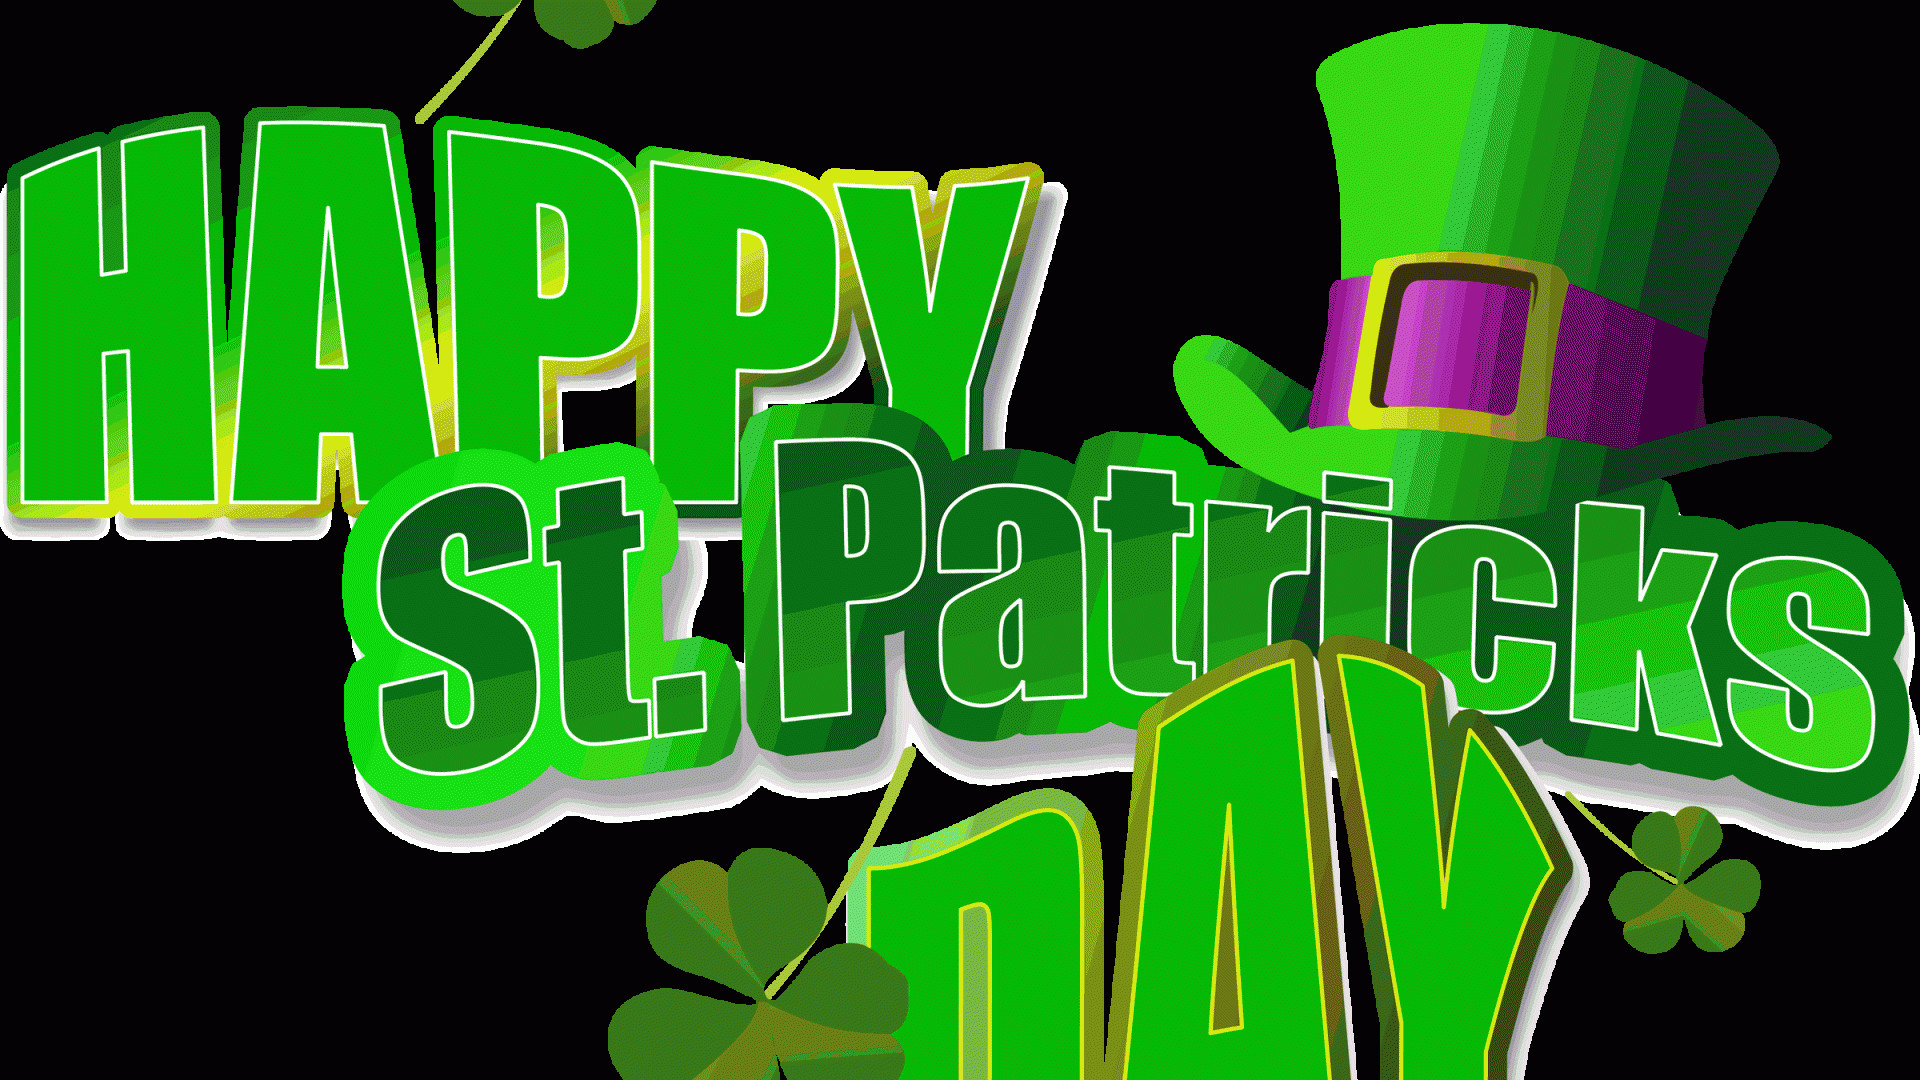 iPhone Wallpaper – St. Patrick's Day tjn 0 HTML code. (HD),  311.29 KB – High definition displays